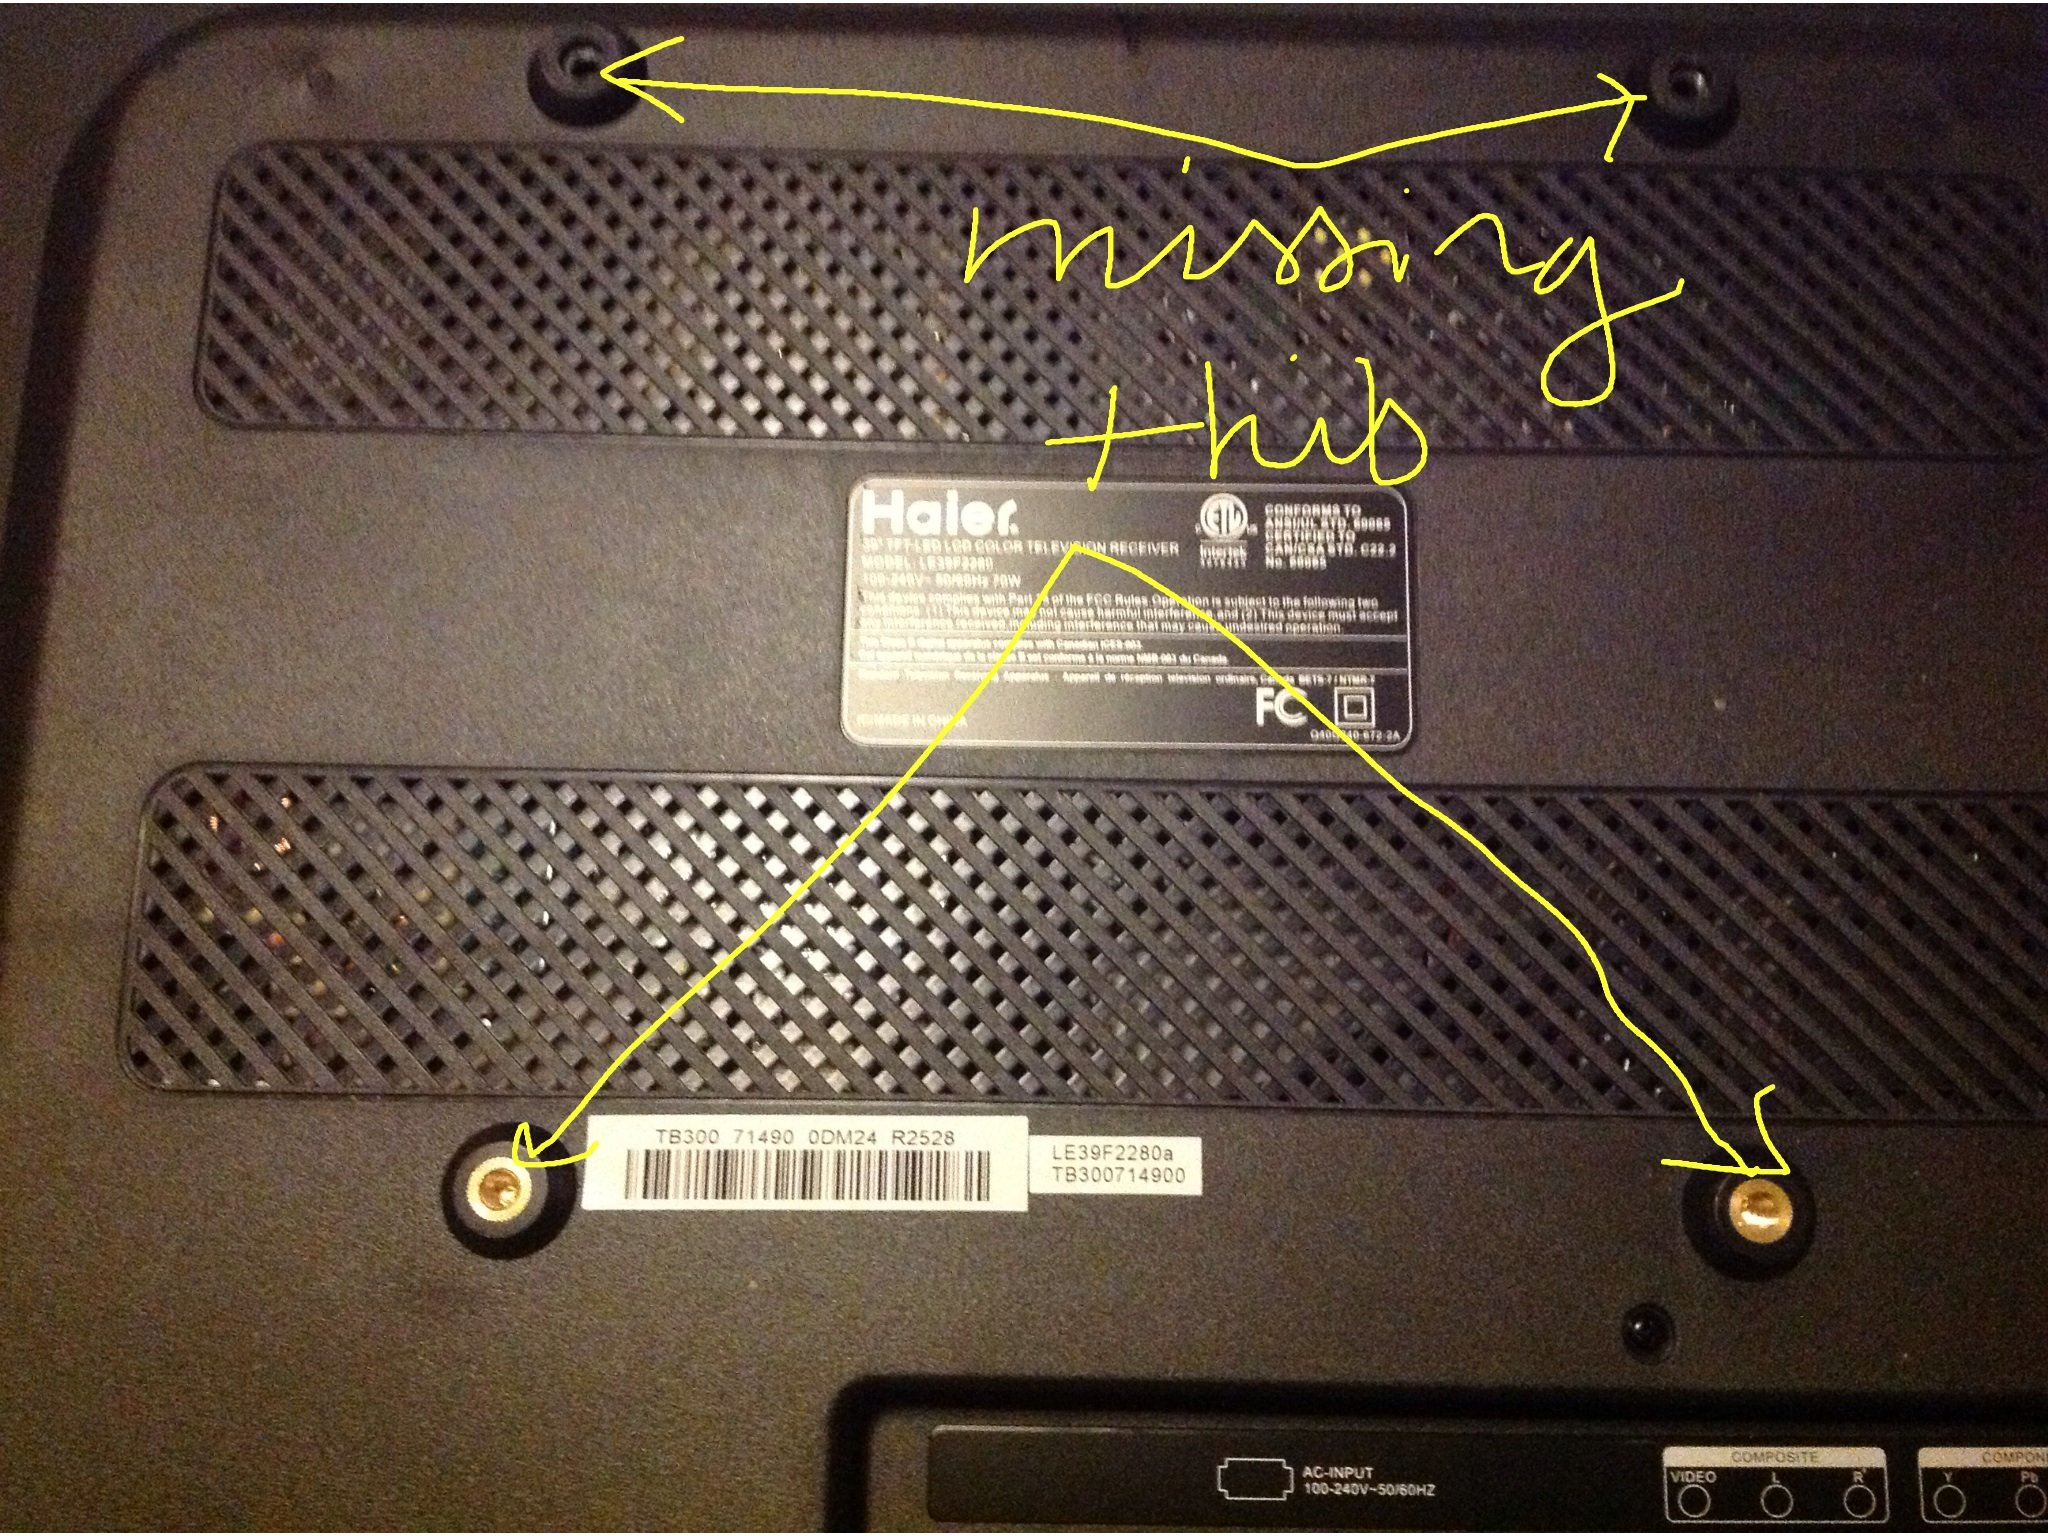 Haier LE39F2280 mounting - AVS Forum | Home Theater Discussions And